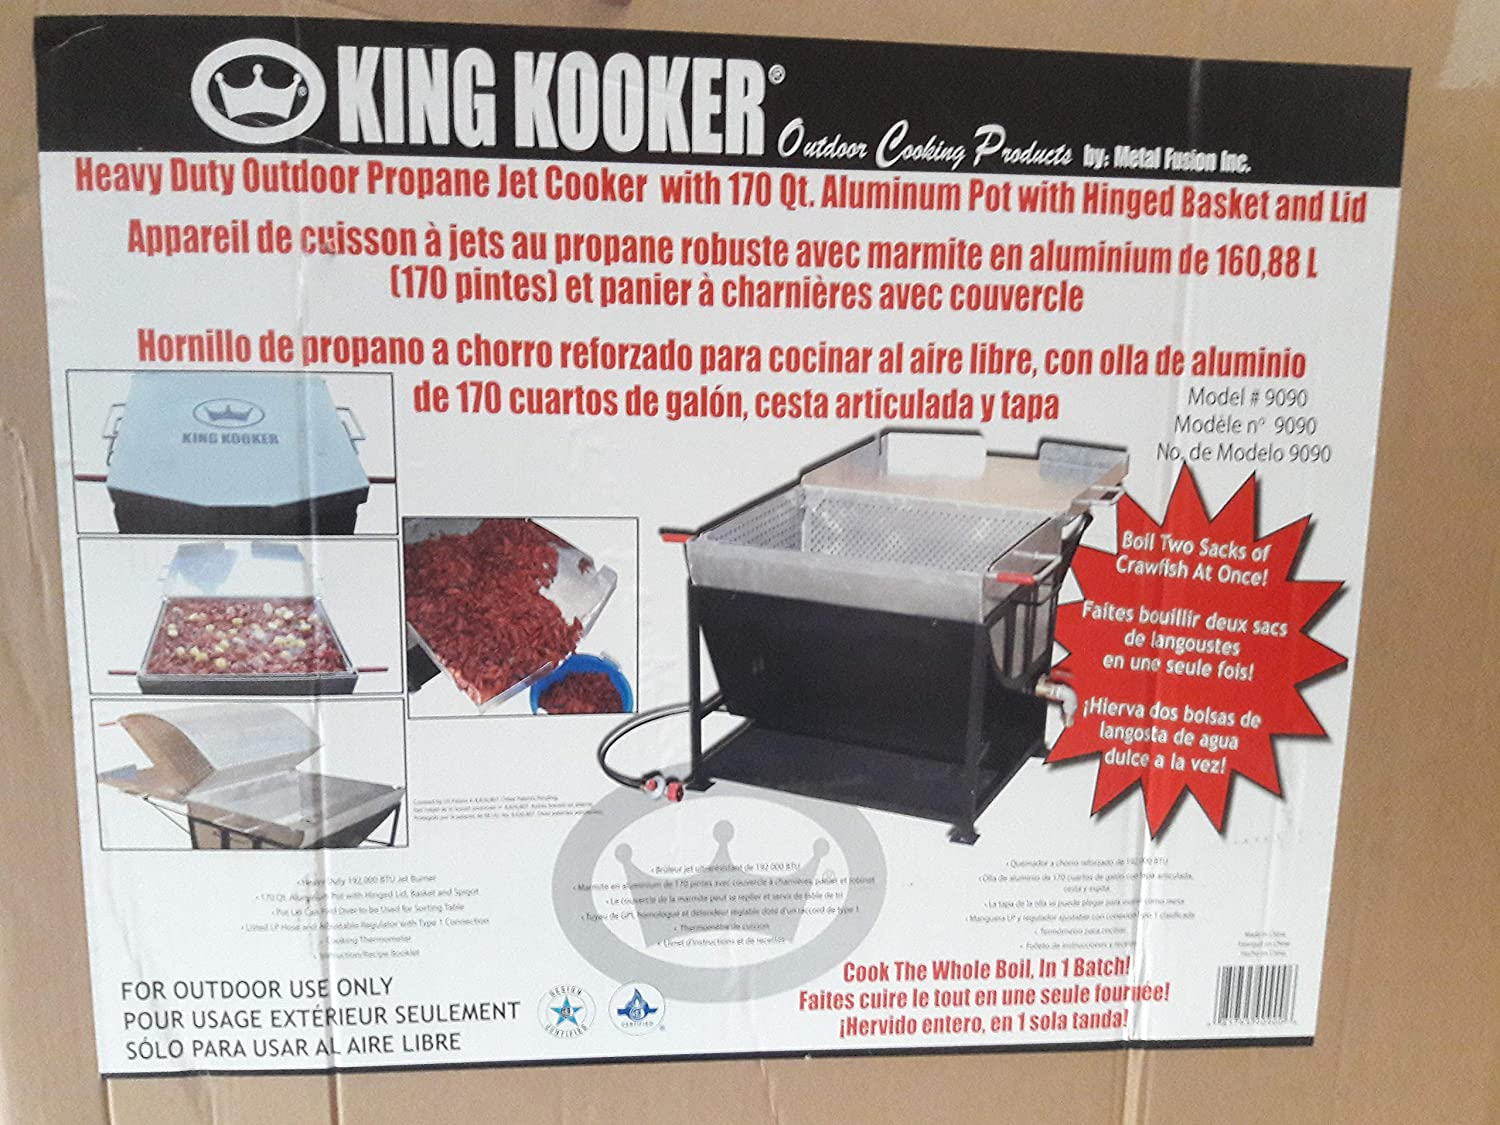 King Kooker 9090 170 Qt. Outdoor Propane Jet Cooker, One Size, Multi